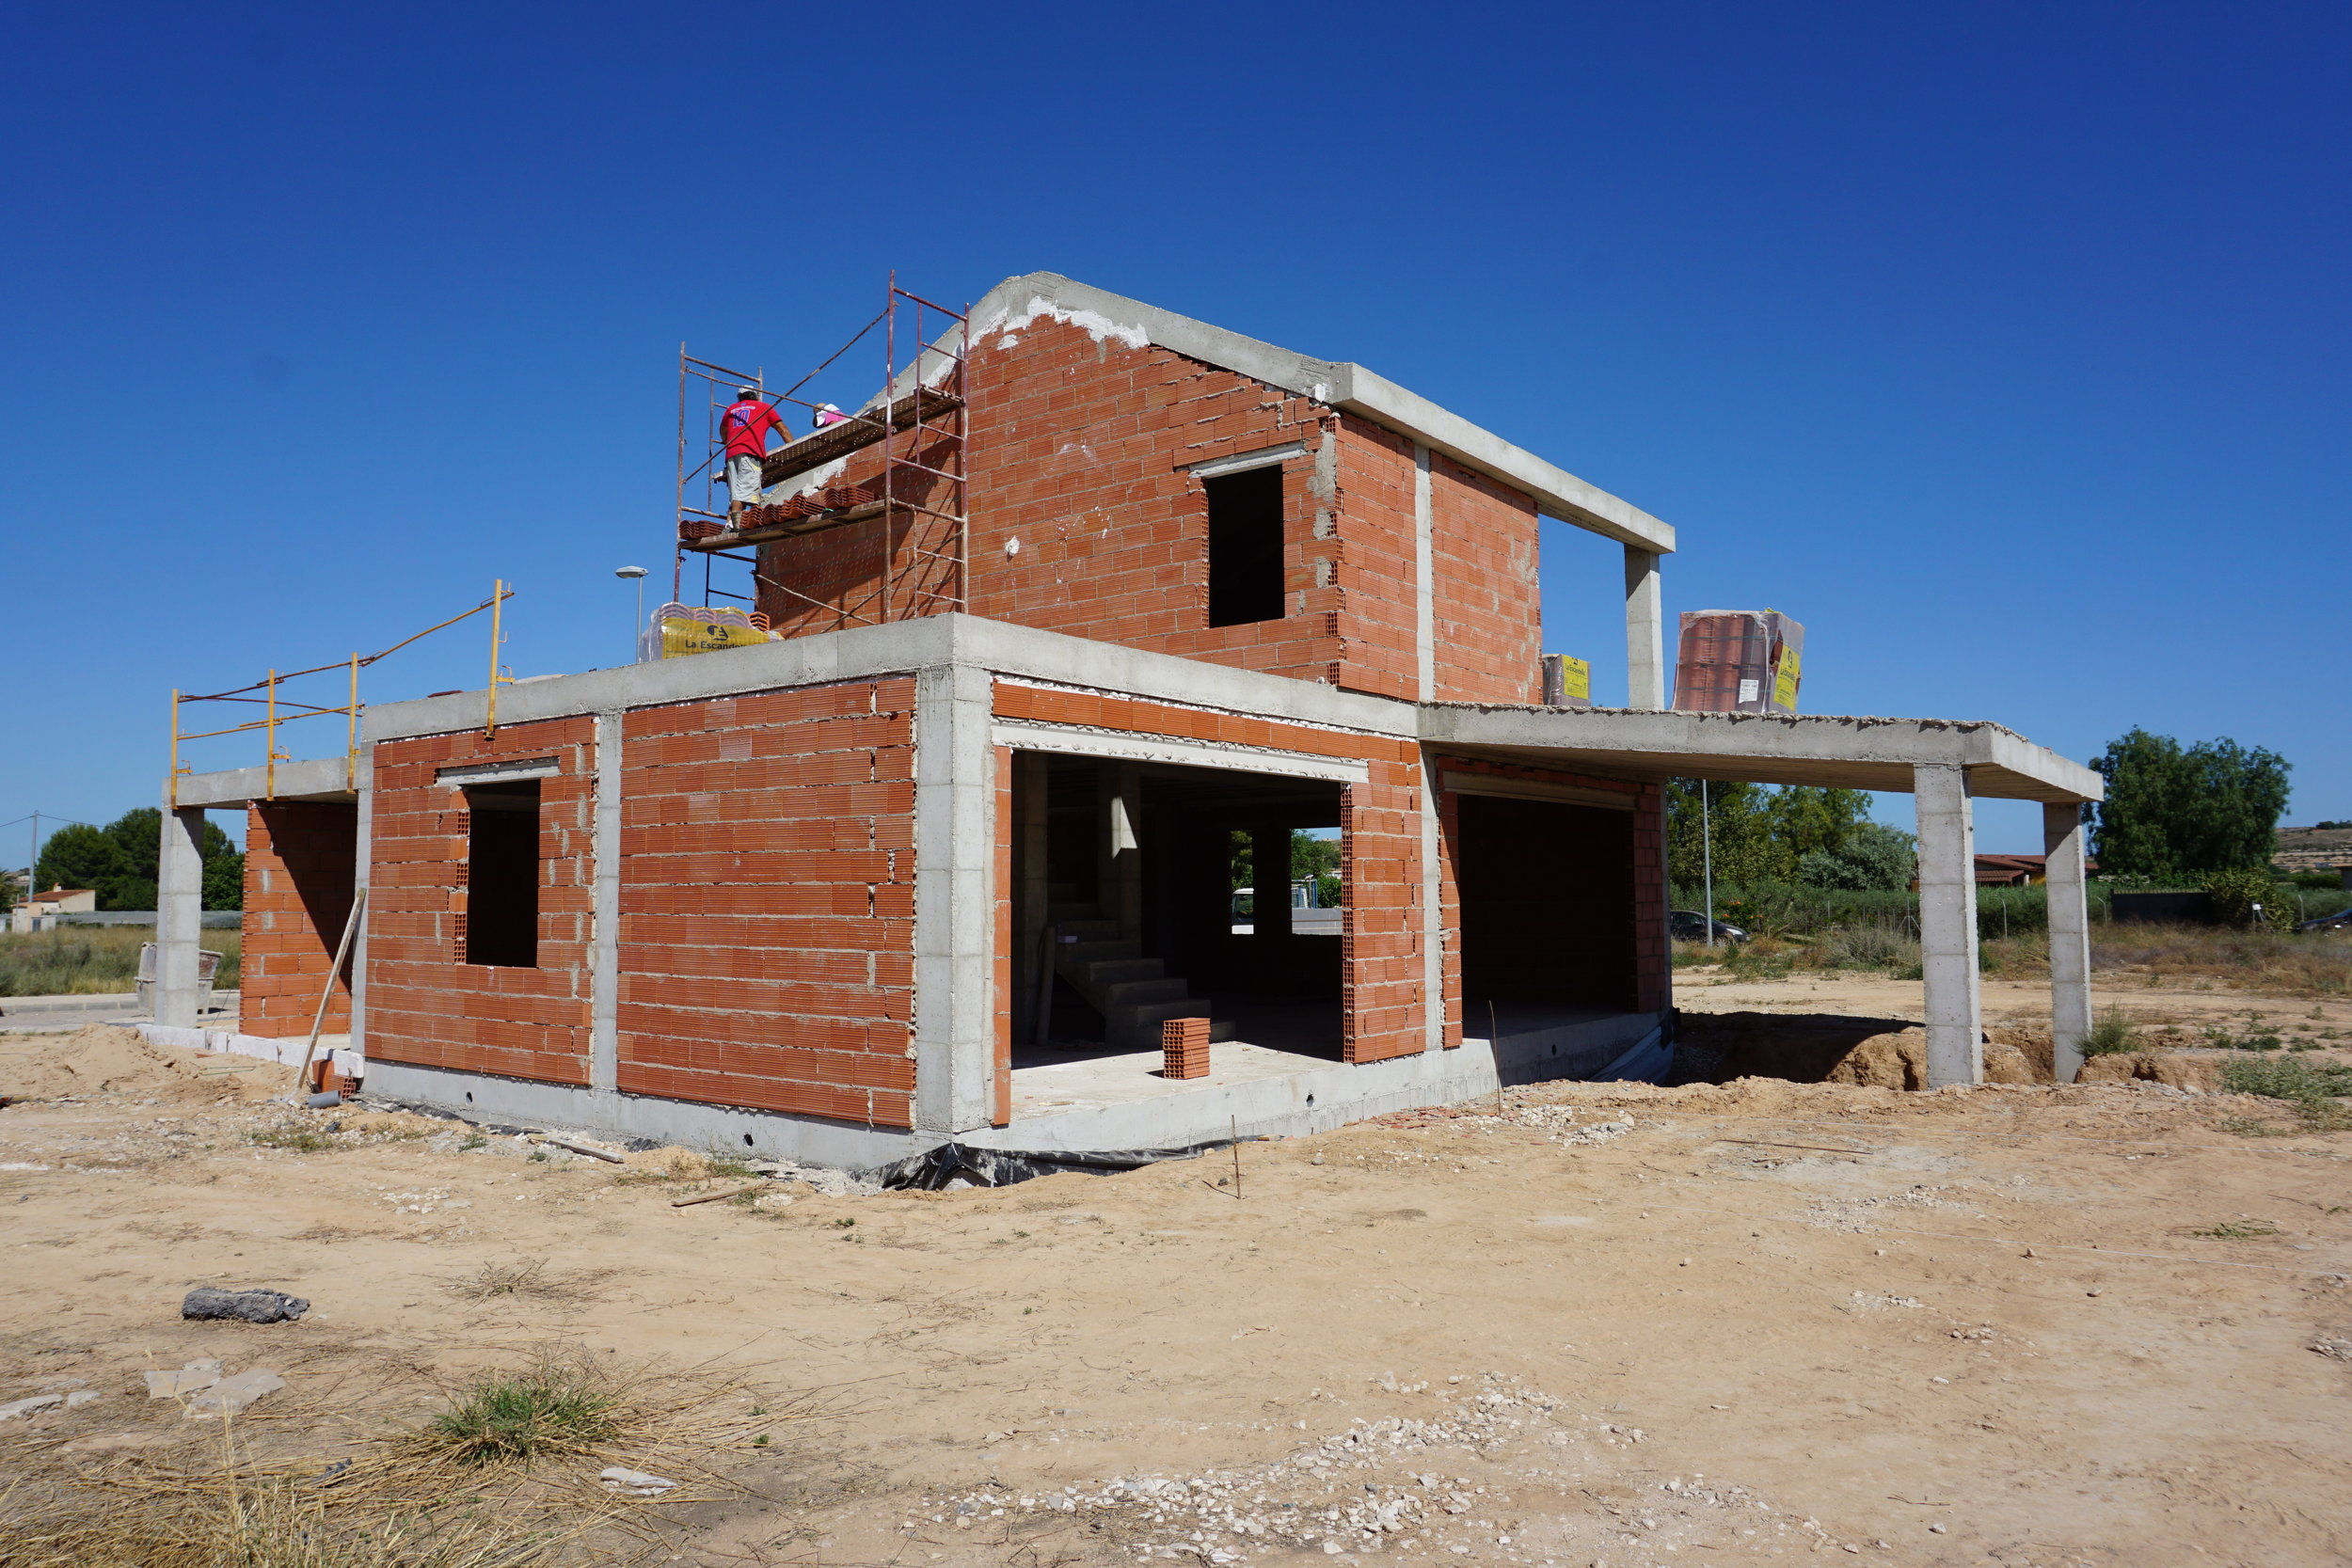 New Build - Building your home doesn't have to be stressful and complicated, a good architect and building team is our speciality here at Sparq.